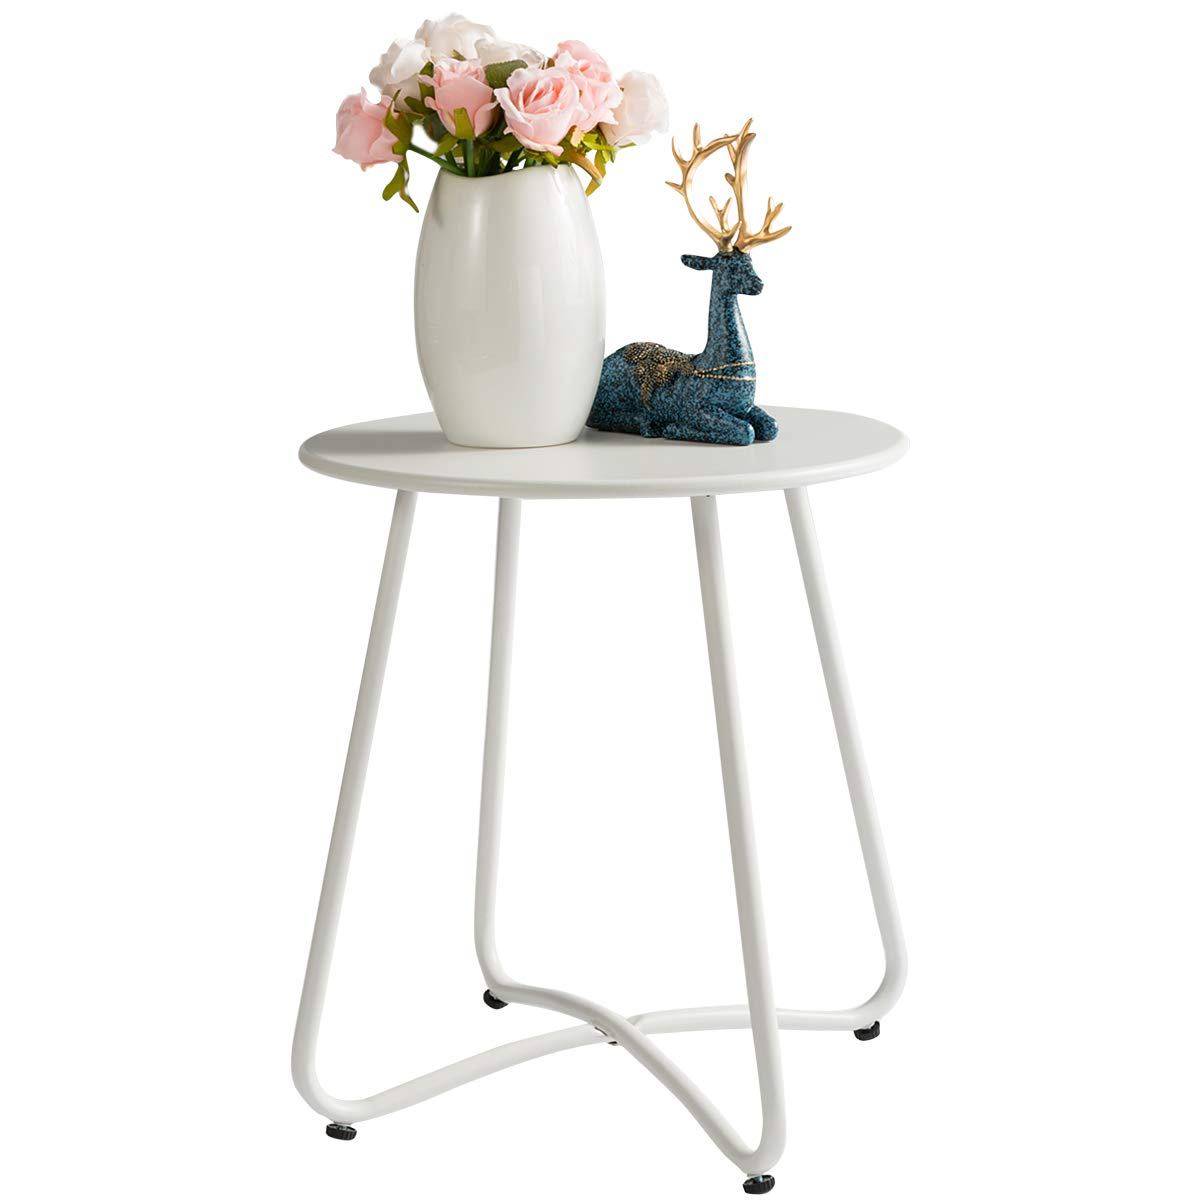 """HollyHOME Small Round Patio Metal Side Snack Table, Accent Anti-Rust Steel Coffee Table for Garden, Modern Weatherproof Outdoor End Table, (H) 17.55"""" x(D) 15.60"""", White"""